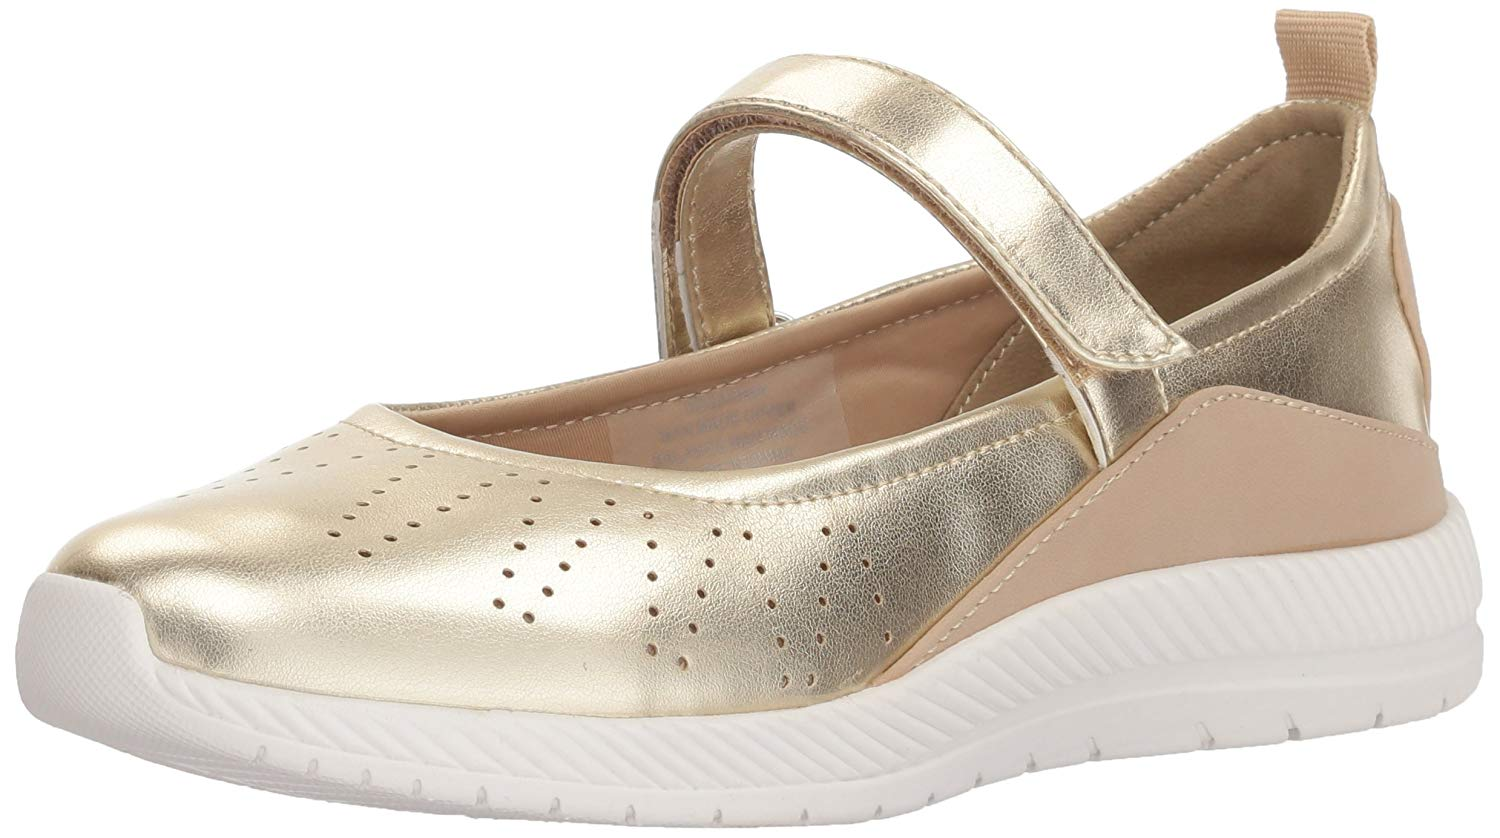 Easy Spirit Damenschuhe GARIMA Closed Toe Mary Jane Flats, Gold, Größe 7.5